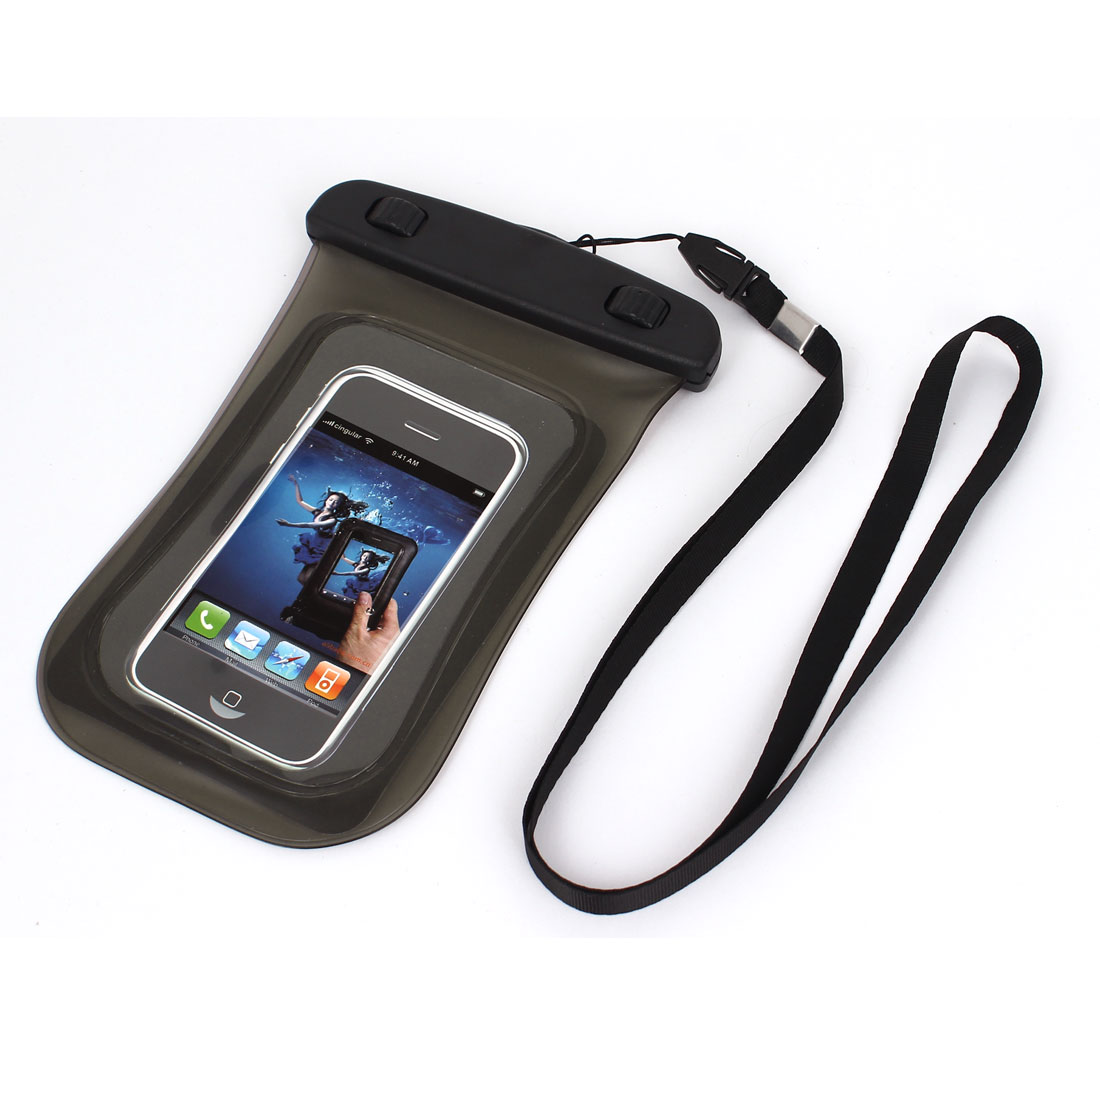 Unique Bargains Universal Waterproof Case Dry Bag Protective Cover Pouch Gray for 4  Cell Phone